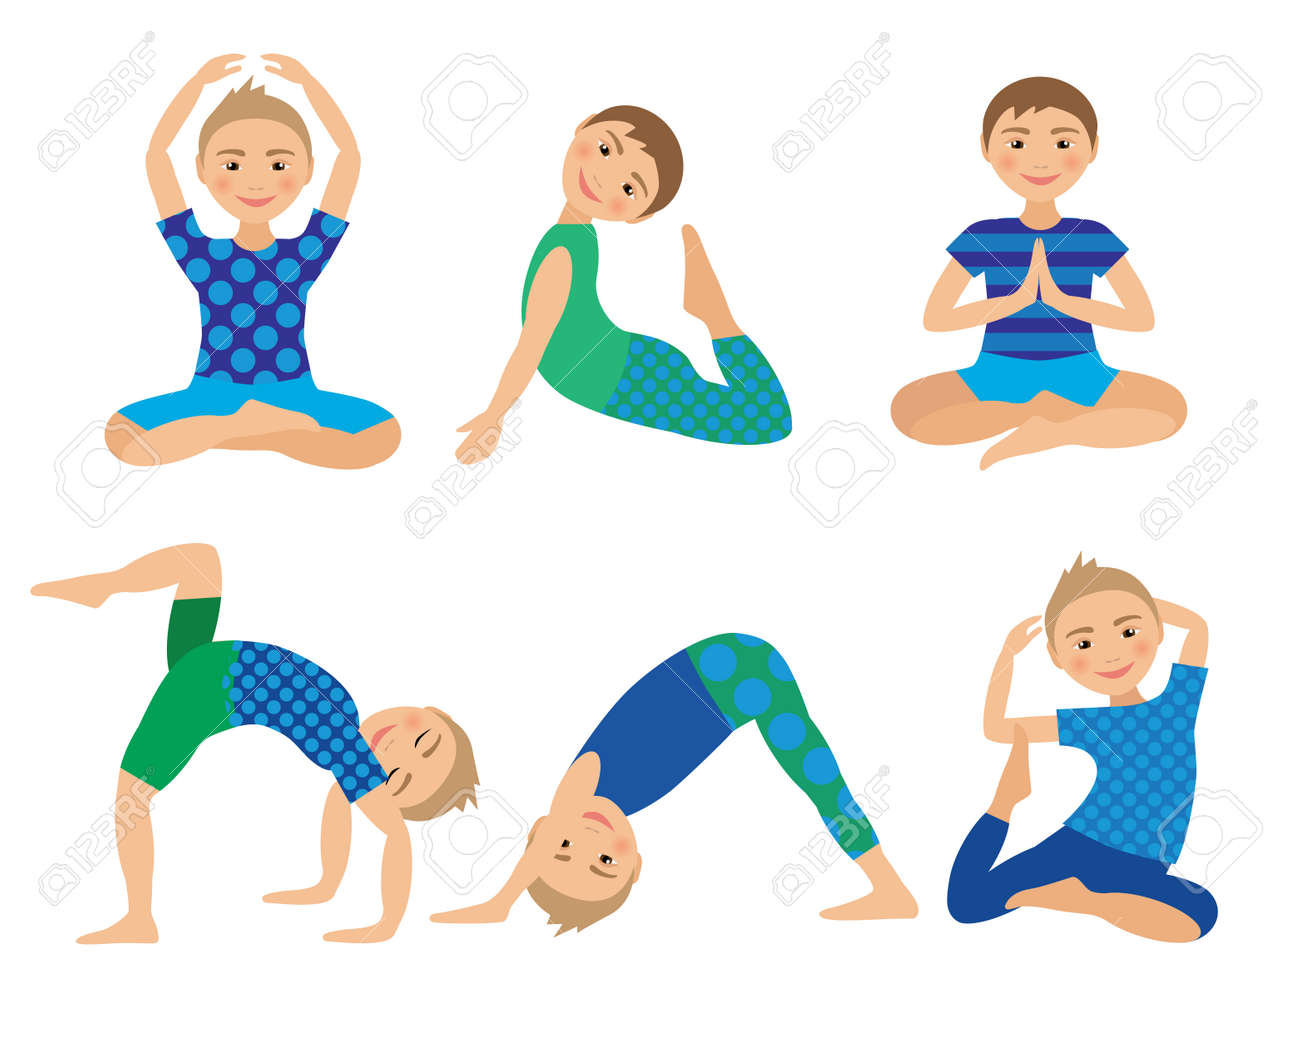 Kids Yoga Poses Vector Illustration Child Doing Exercises Posture For Kid Healthy Children